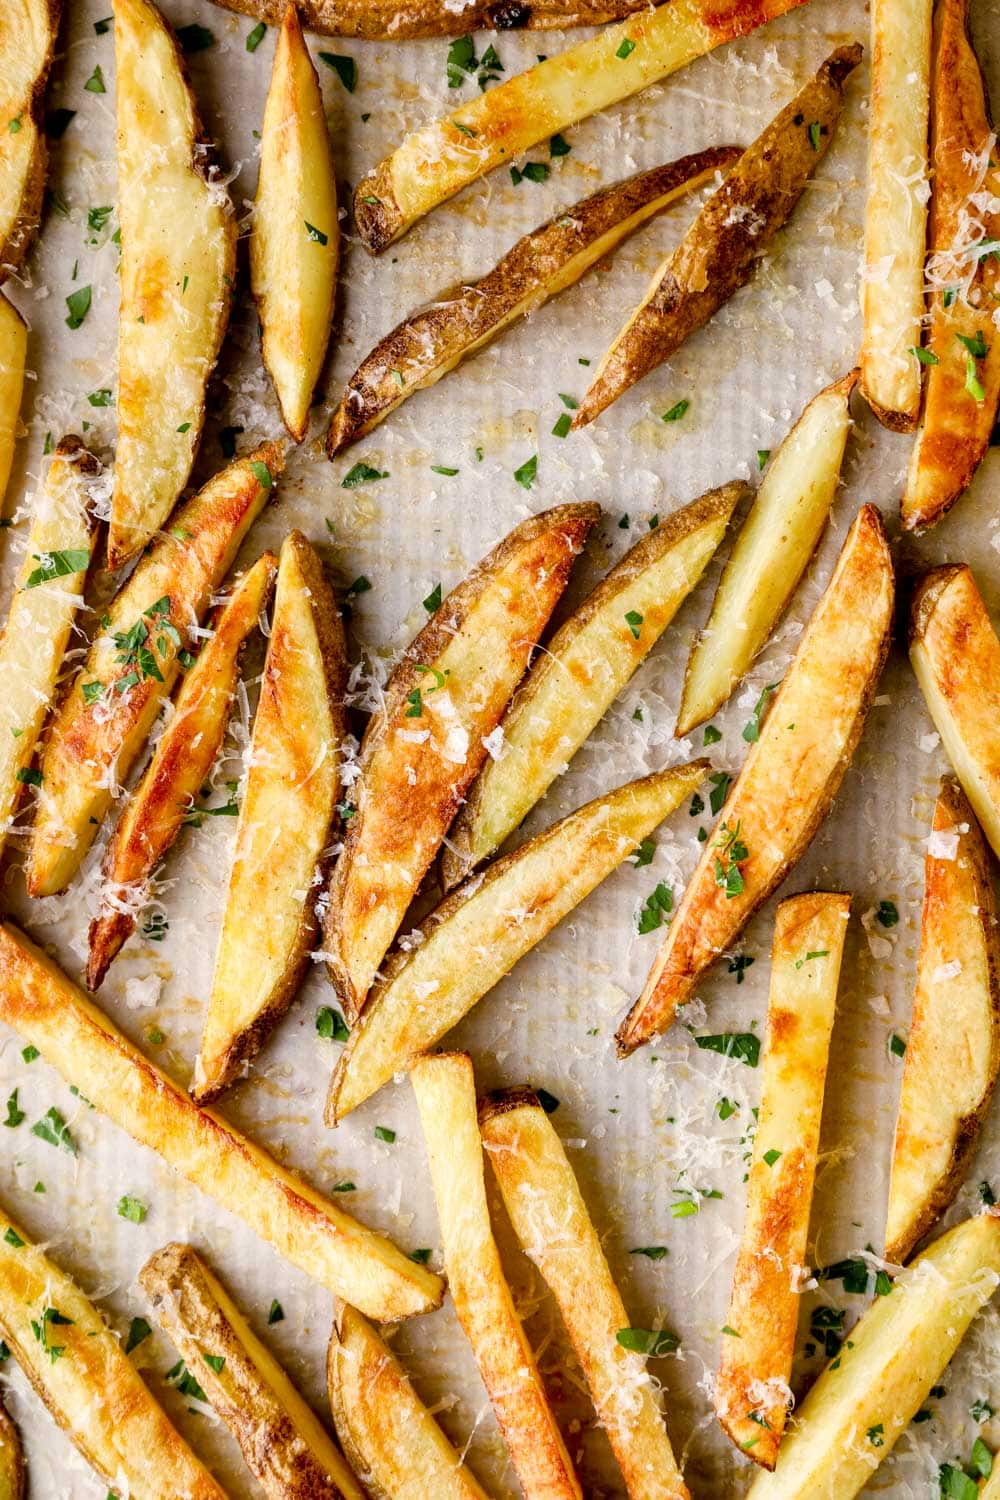 Baked truffle fries on parchment paper with grated parmesan cheese.